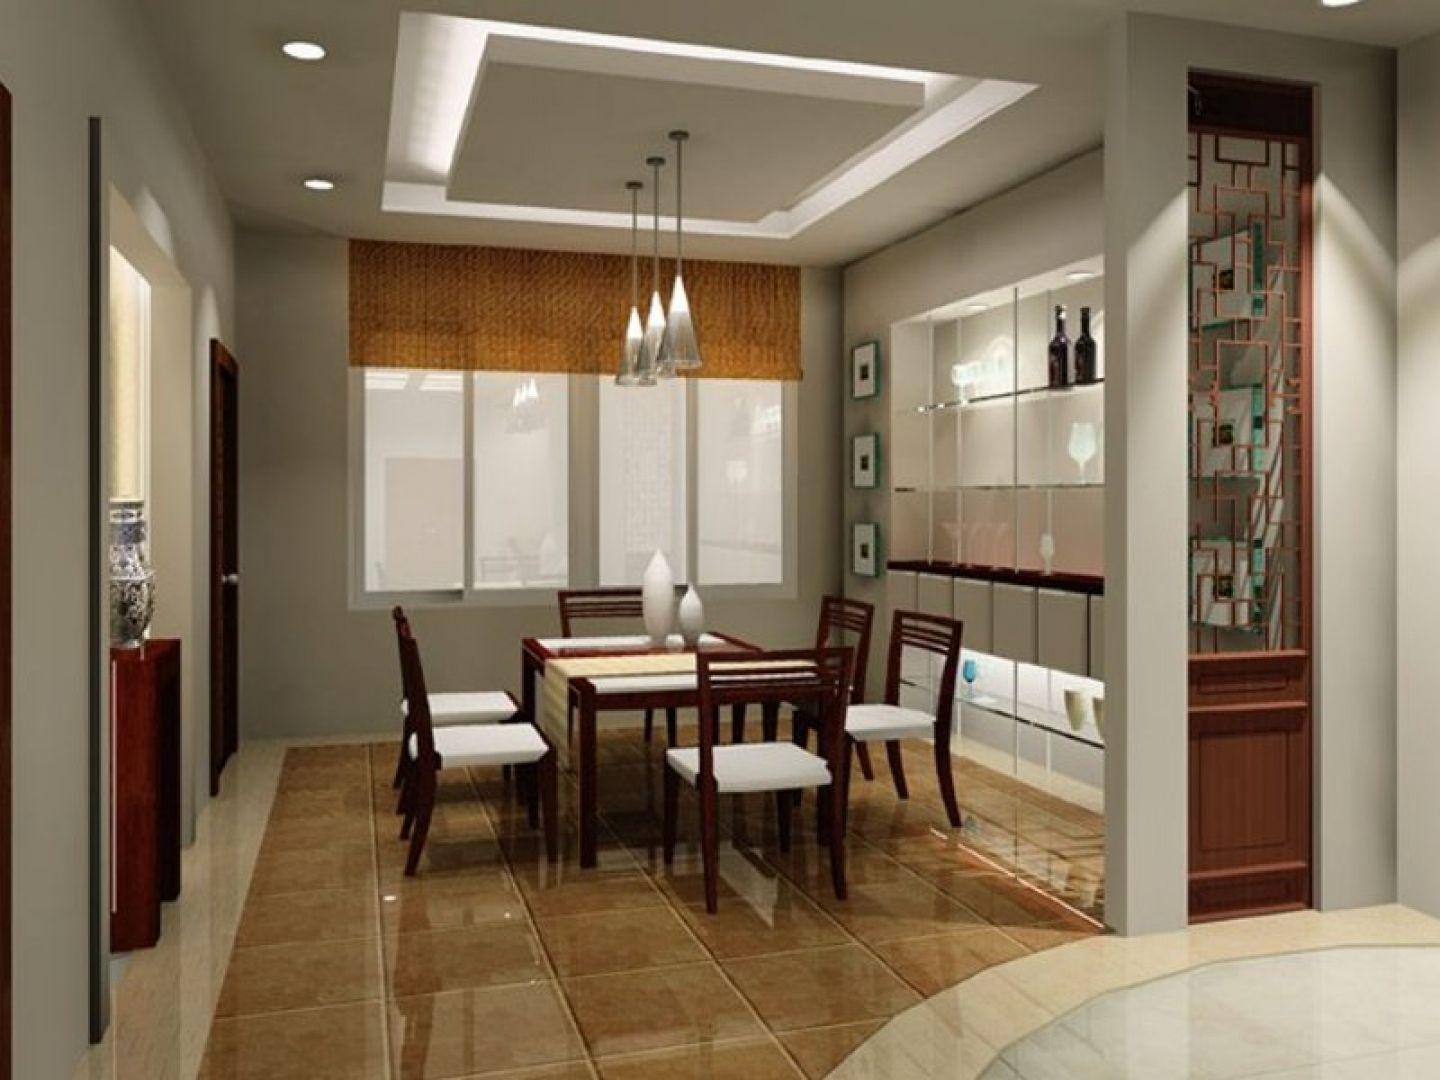 exquisite small dining room idea designs with small dining room small dining room design ideas - Modern Dining Room Decor Ideas